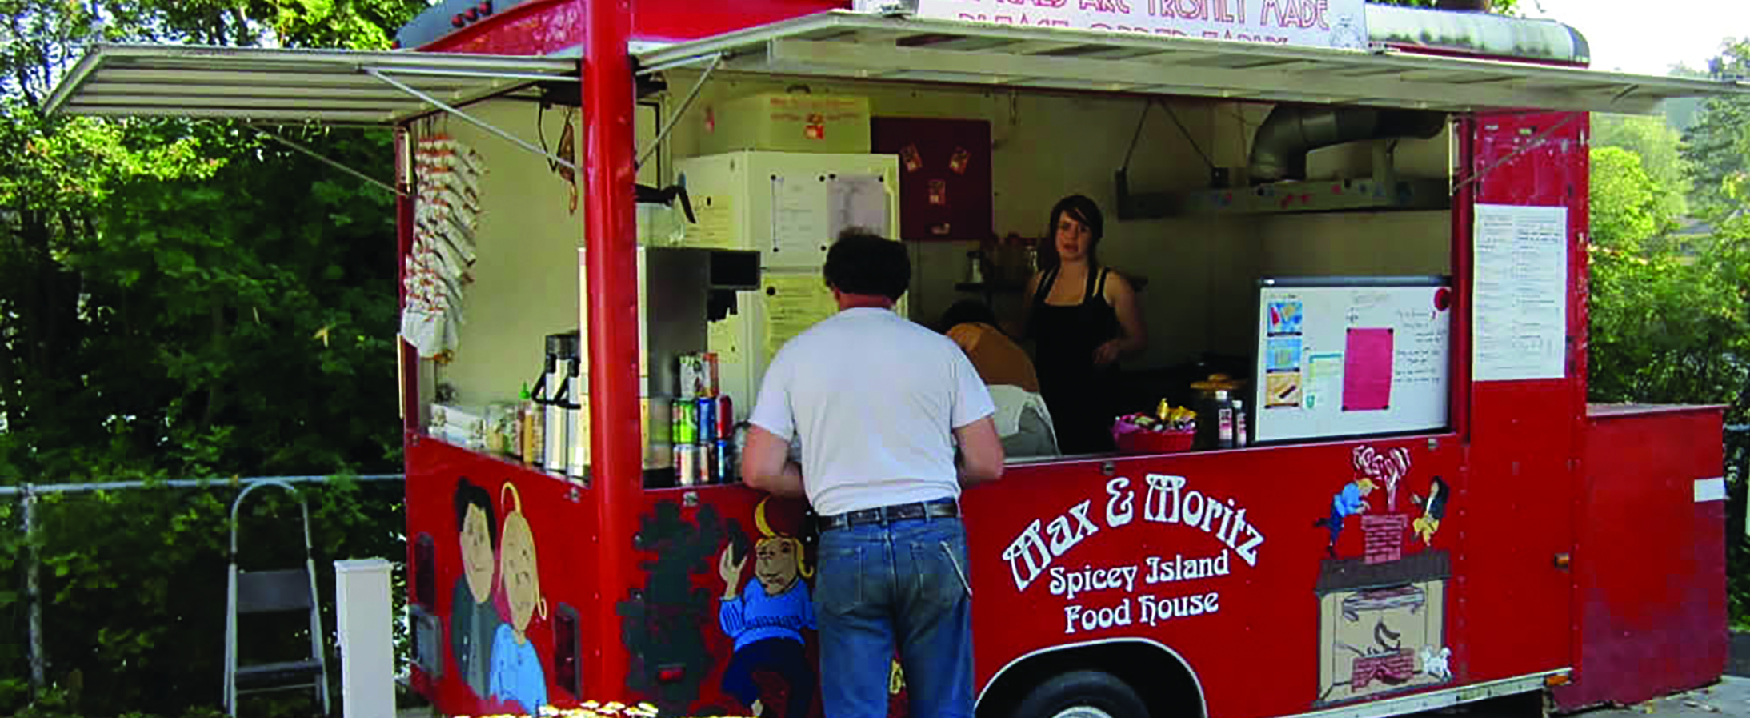 Picture of two people in a food truck serving a customer.